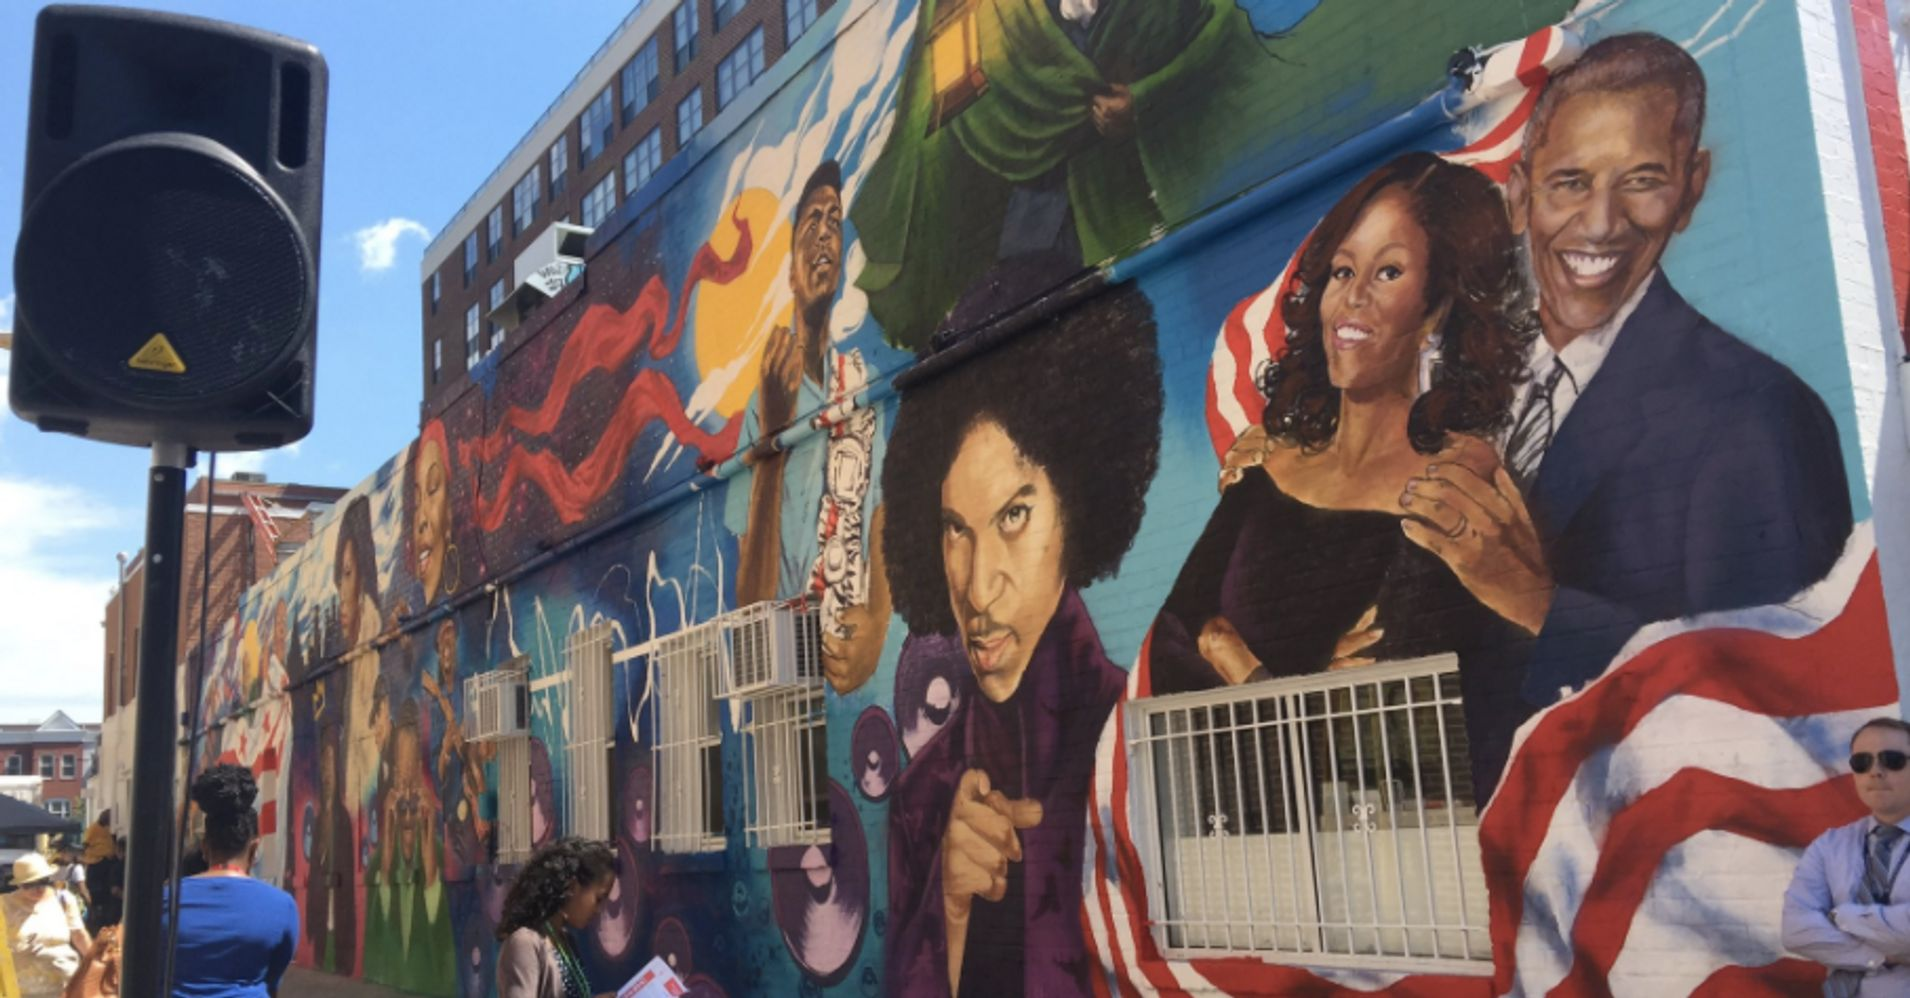 Bill cosby 39 s face on famous d c mural replaced with 15 for Chuck brown mural